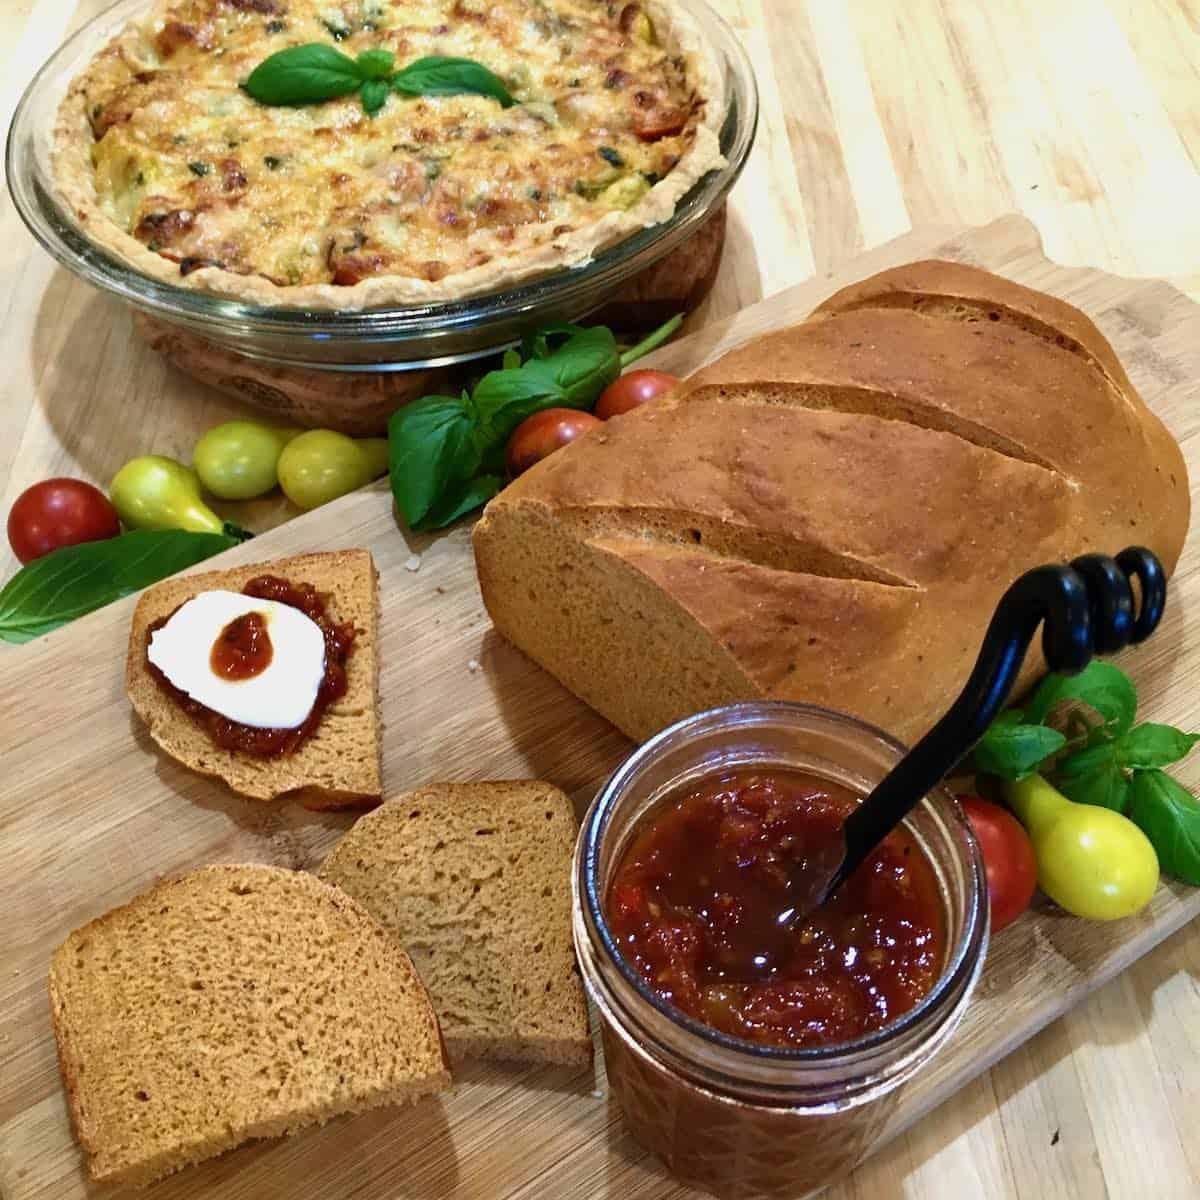 tomato pie, tomato jam and tomato bread